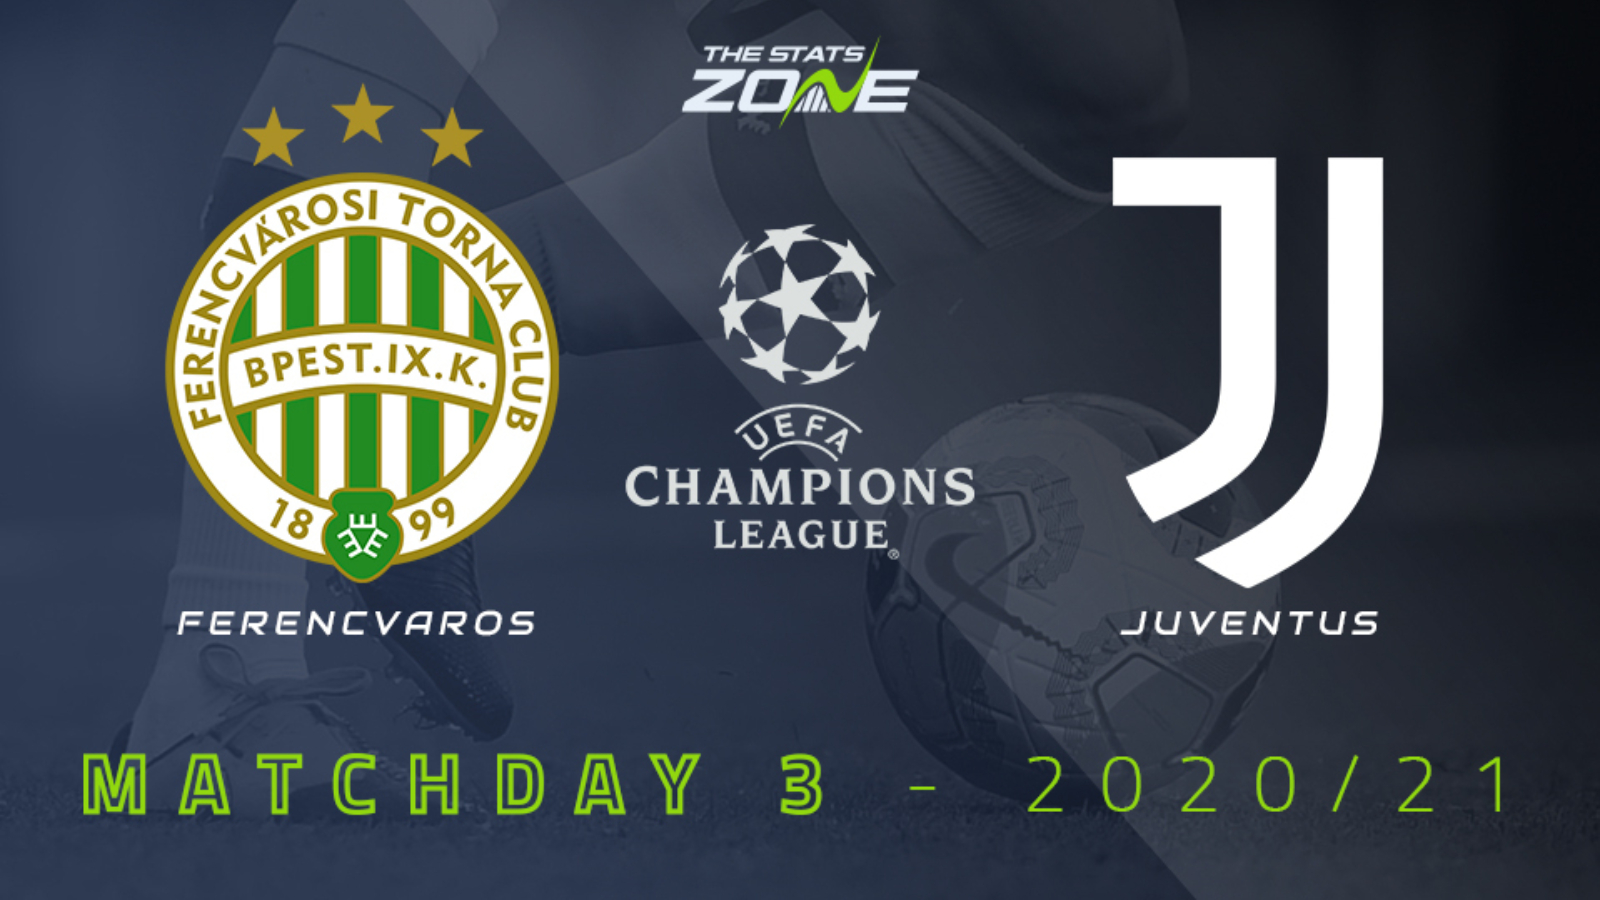 2020 21 uefa champions league ferencvaros vs juventus preview prediction the stats zone ferencvaros vs juventus preview